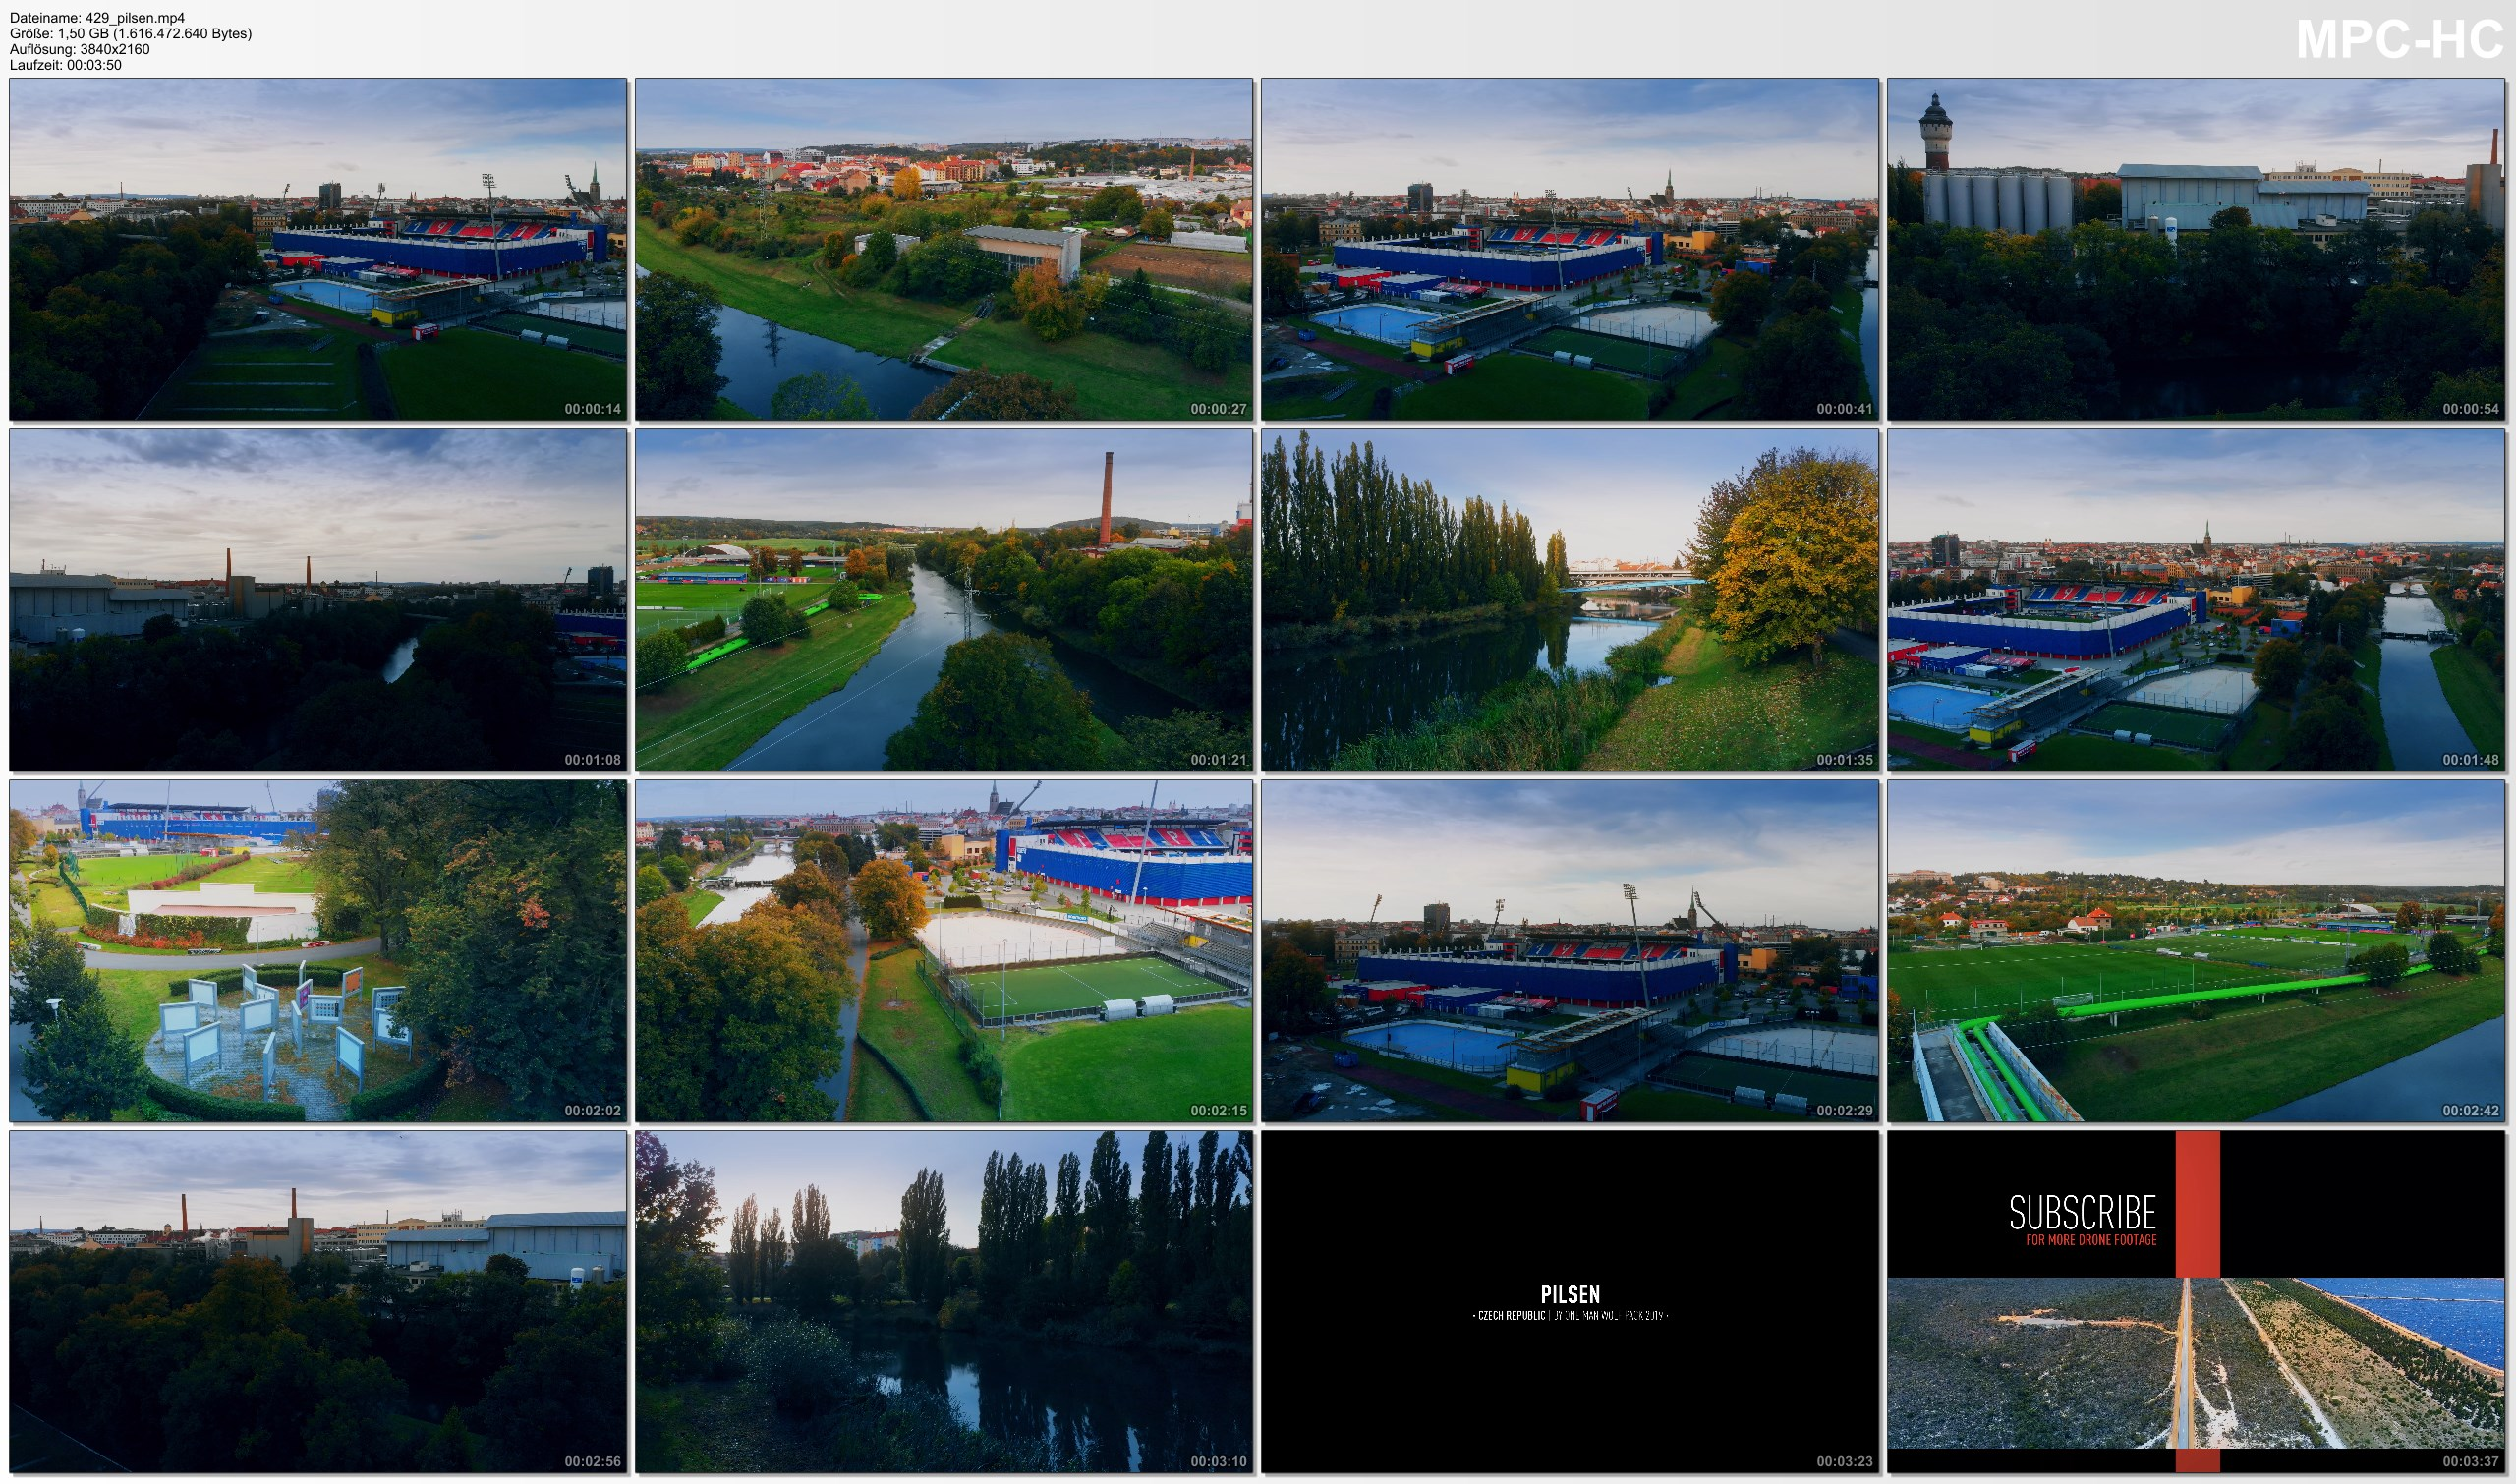 Drone Pictures from Video 【4K】Drone Footage | Pilsen - CZECHIA 2019 ..: Cinematic Aerial | Doosan Arena | Plzeň Czech Republic